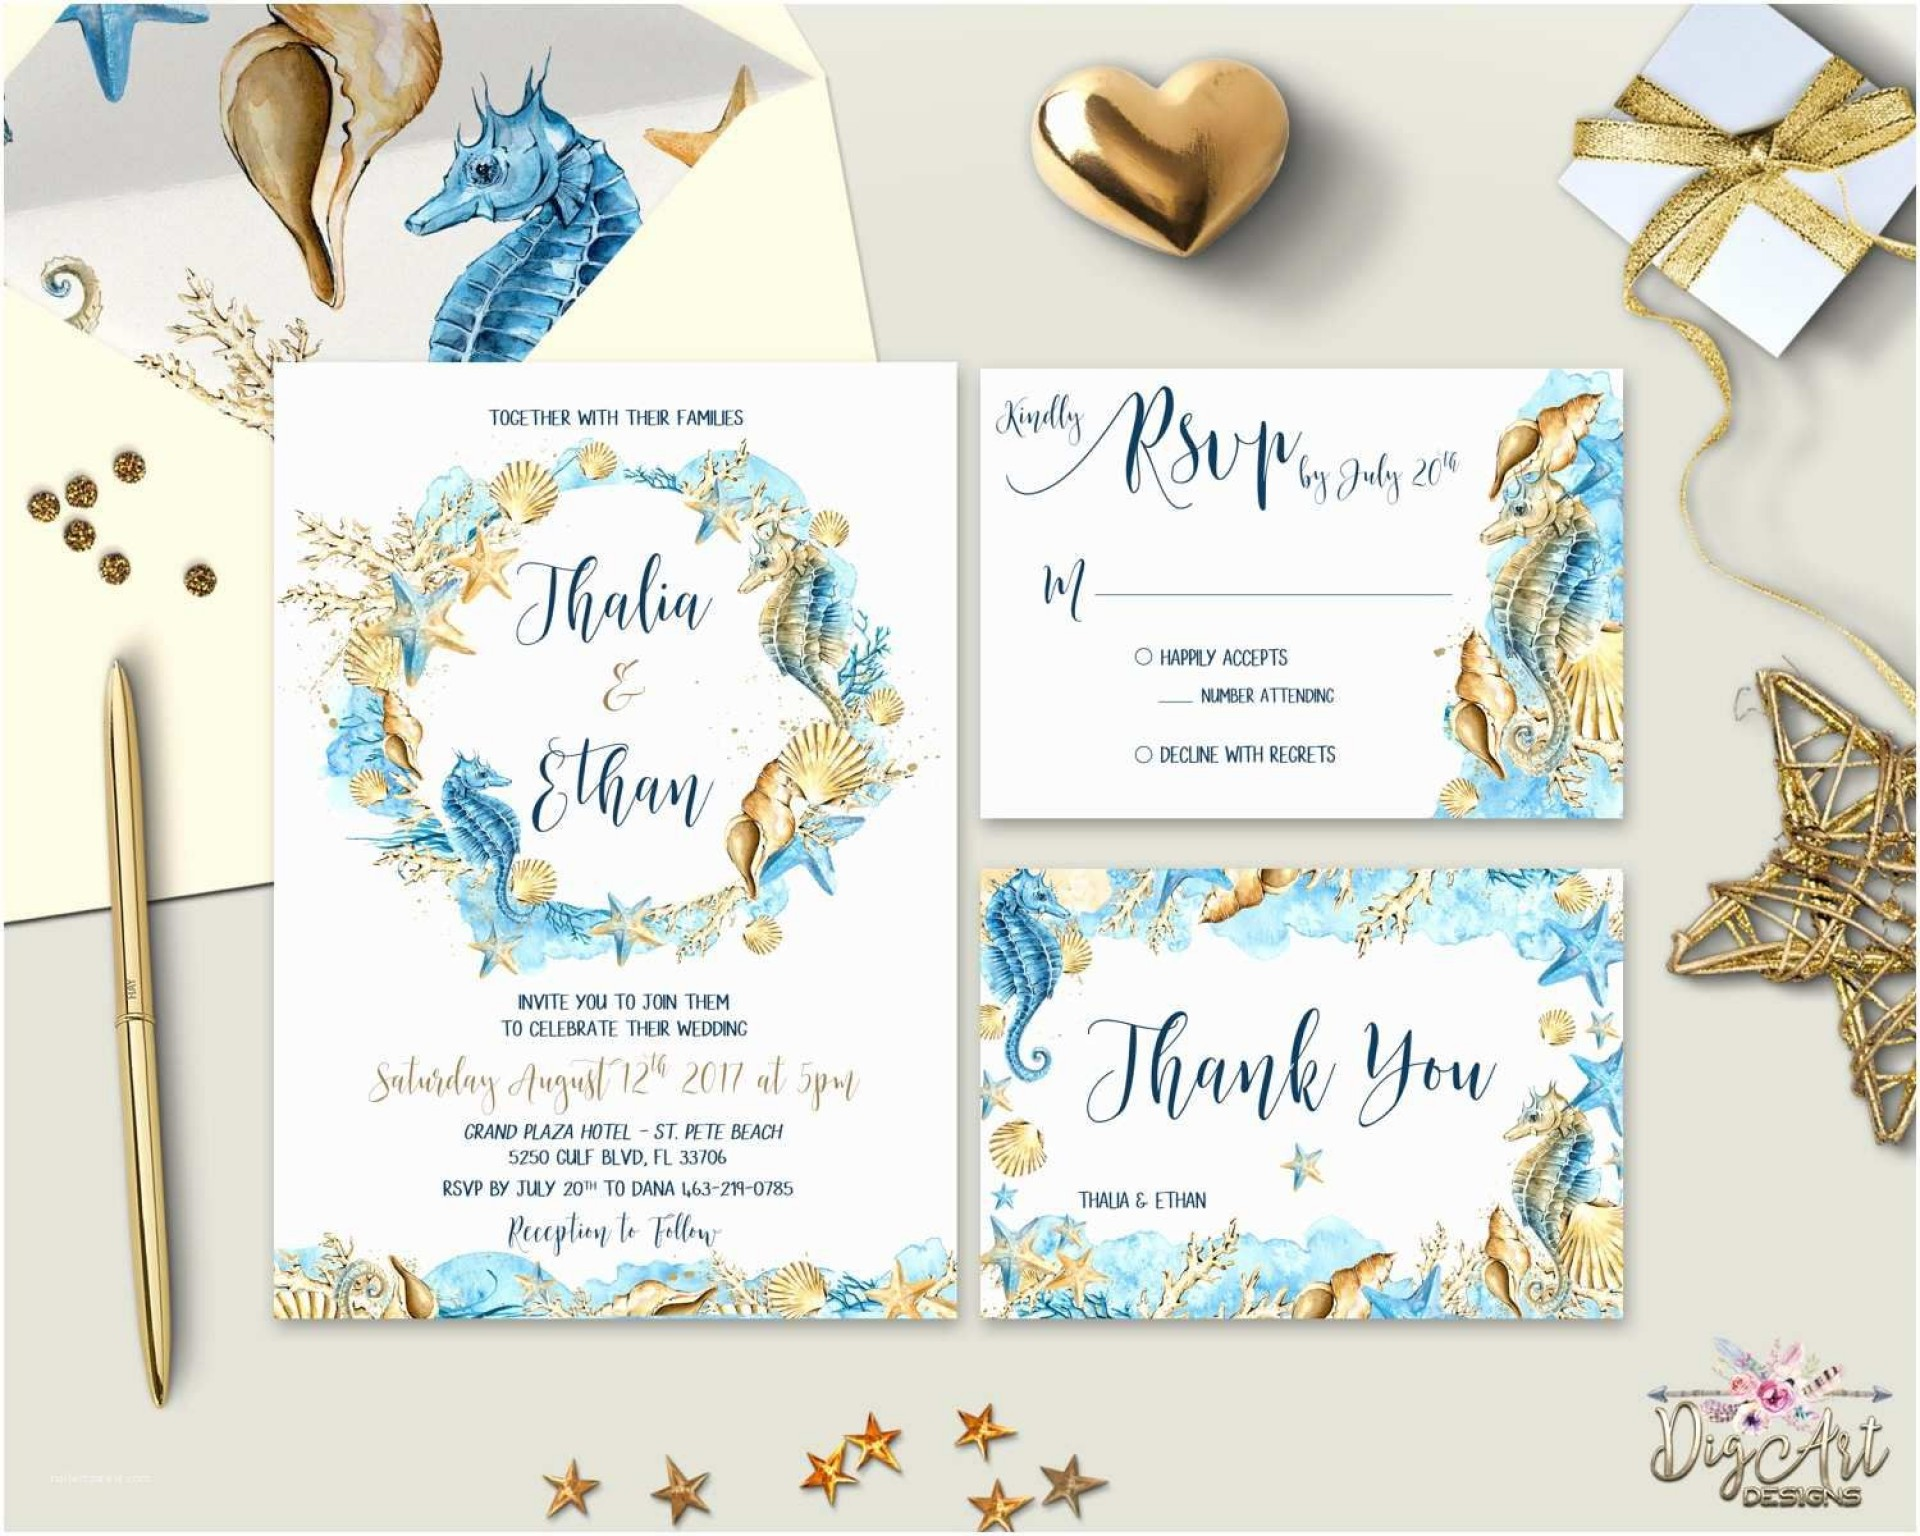 007 Staggering Beach Wedding Invitation Template High Def  Templates Free Download For Word1920